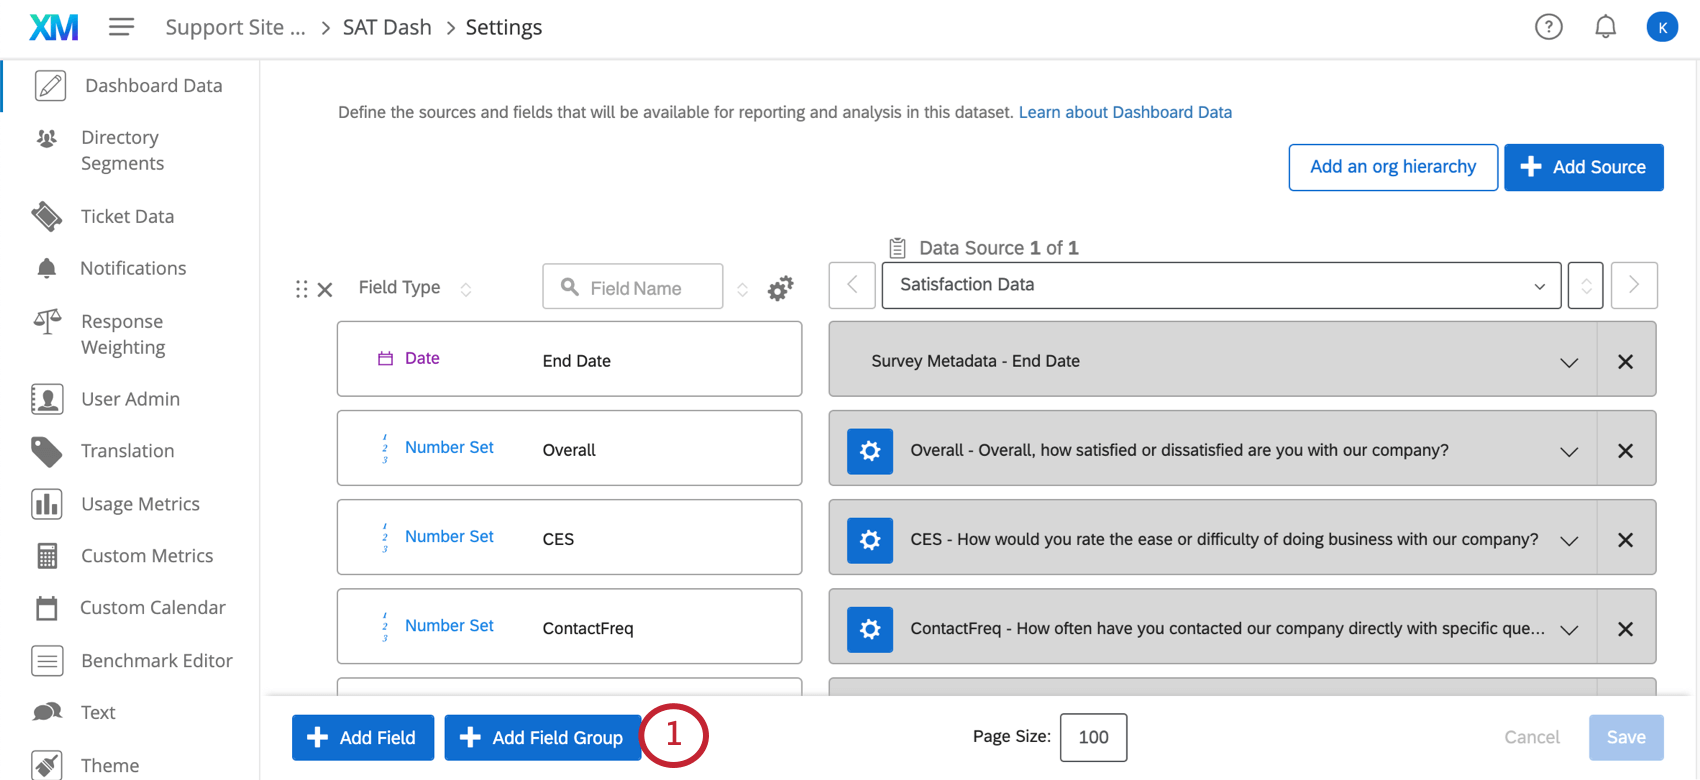 Add Field Group button in blue, very bottom left of dashboard data tab in dashboard settings (first page when you enter settings)